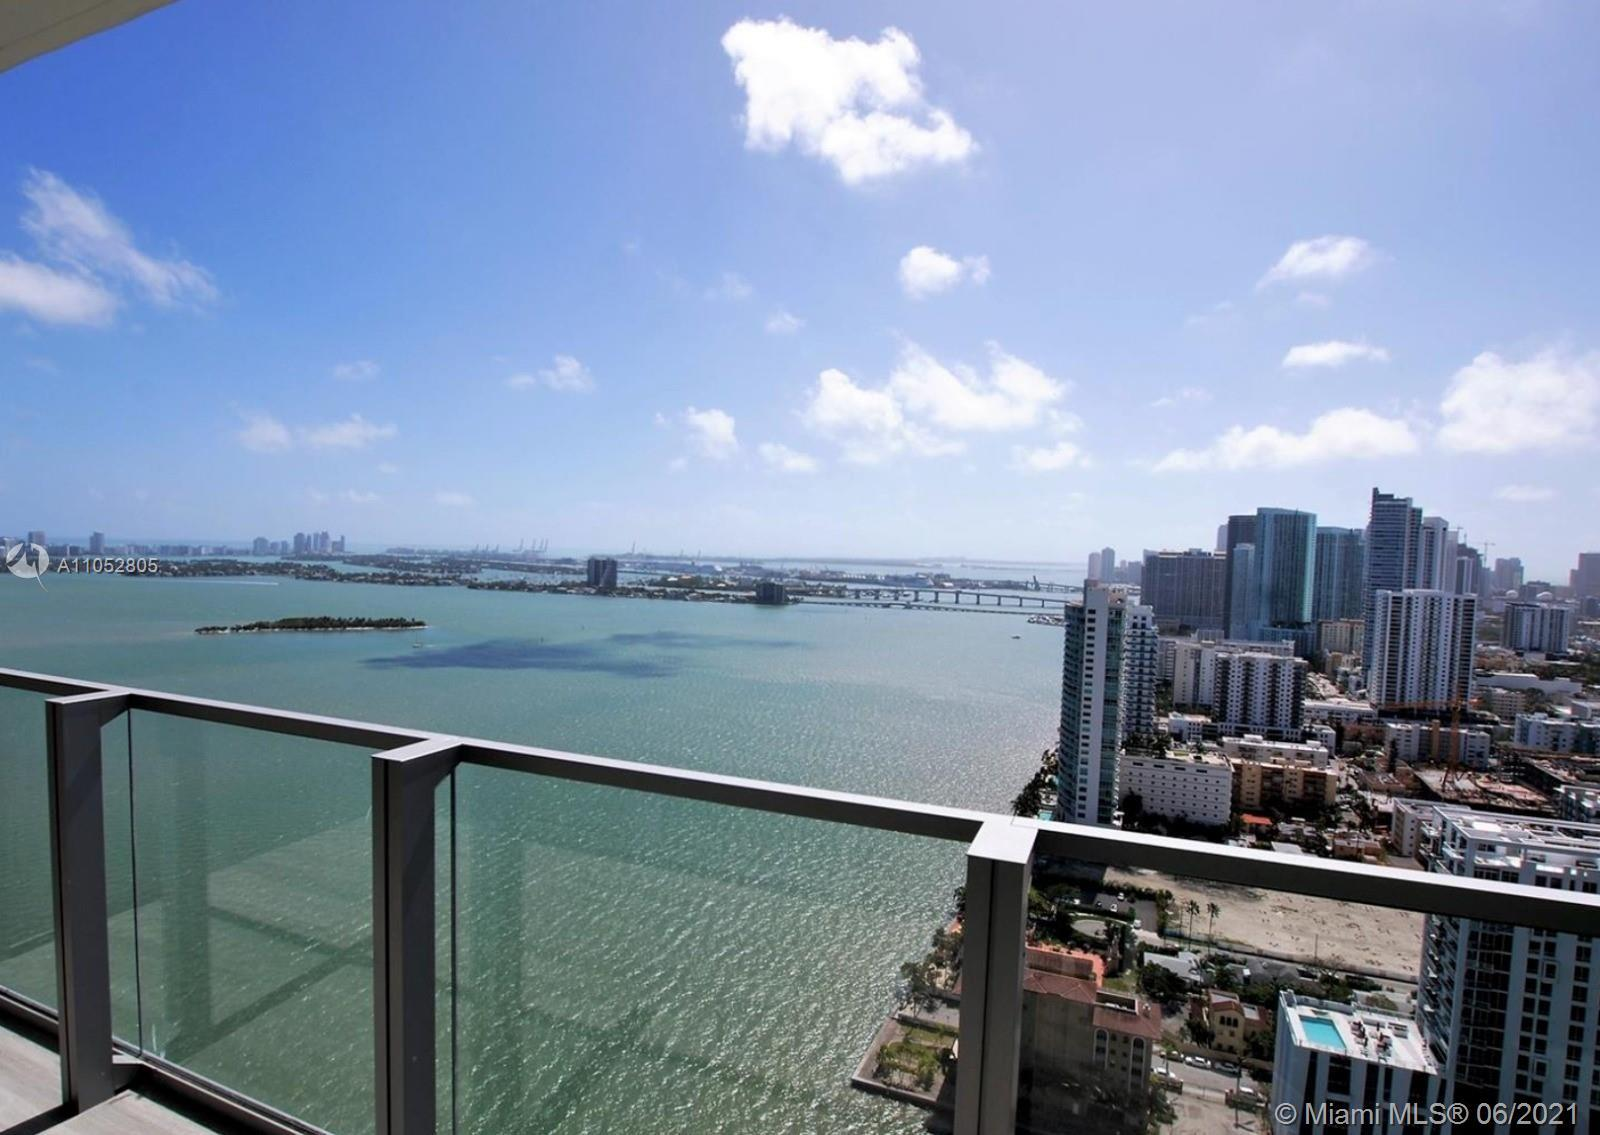 Enjoy this luxurious lifestyle you deserve in one of Miami's best buildings Biscayne Beach Residence